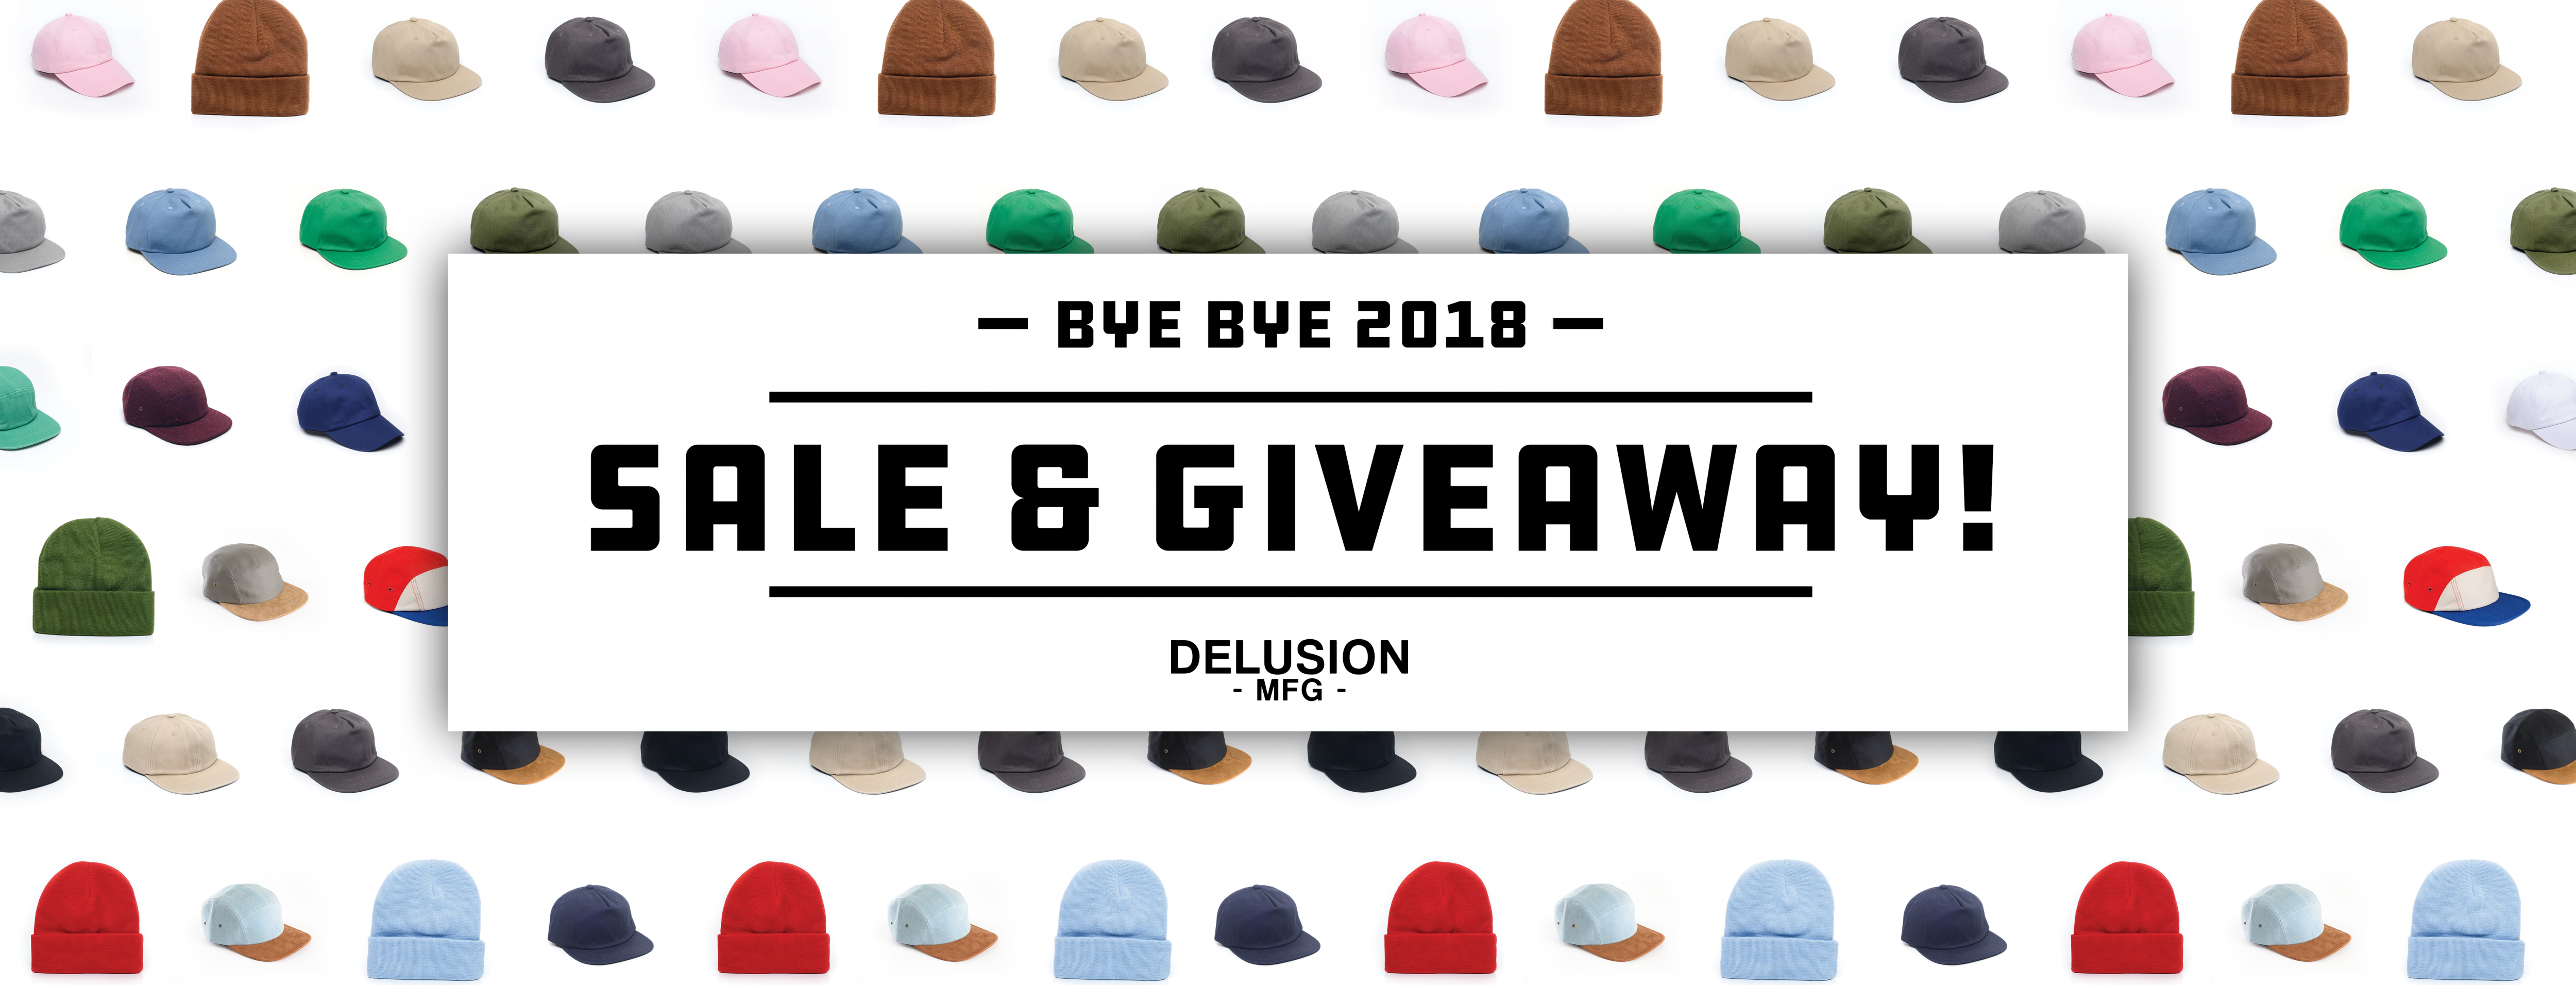 Delusion MFG couldn't have grown so much without the help of our awesome customers. To end the year off right, we've decided to have a GIVEAWAY and SALE before 2019 sneaks around the corner. If you haven't had the chance to catch any of our deals in 2018, here's your last chance! We promise, it's a good one! 5 TOTAL WINNERS for the GIVEAWAY will be chosen. Don't think you'll win, don't worry, we have the SALE that fits your brand and business too.